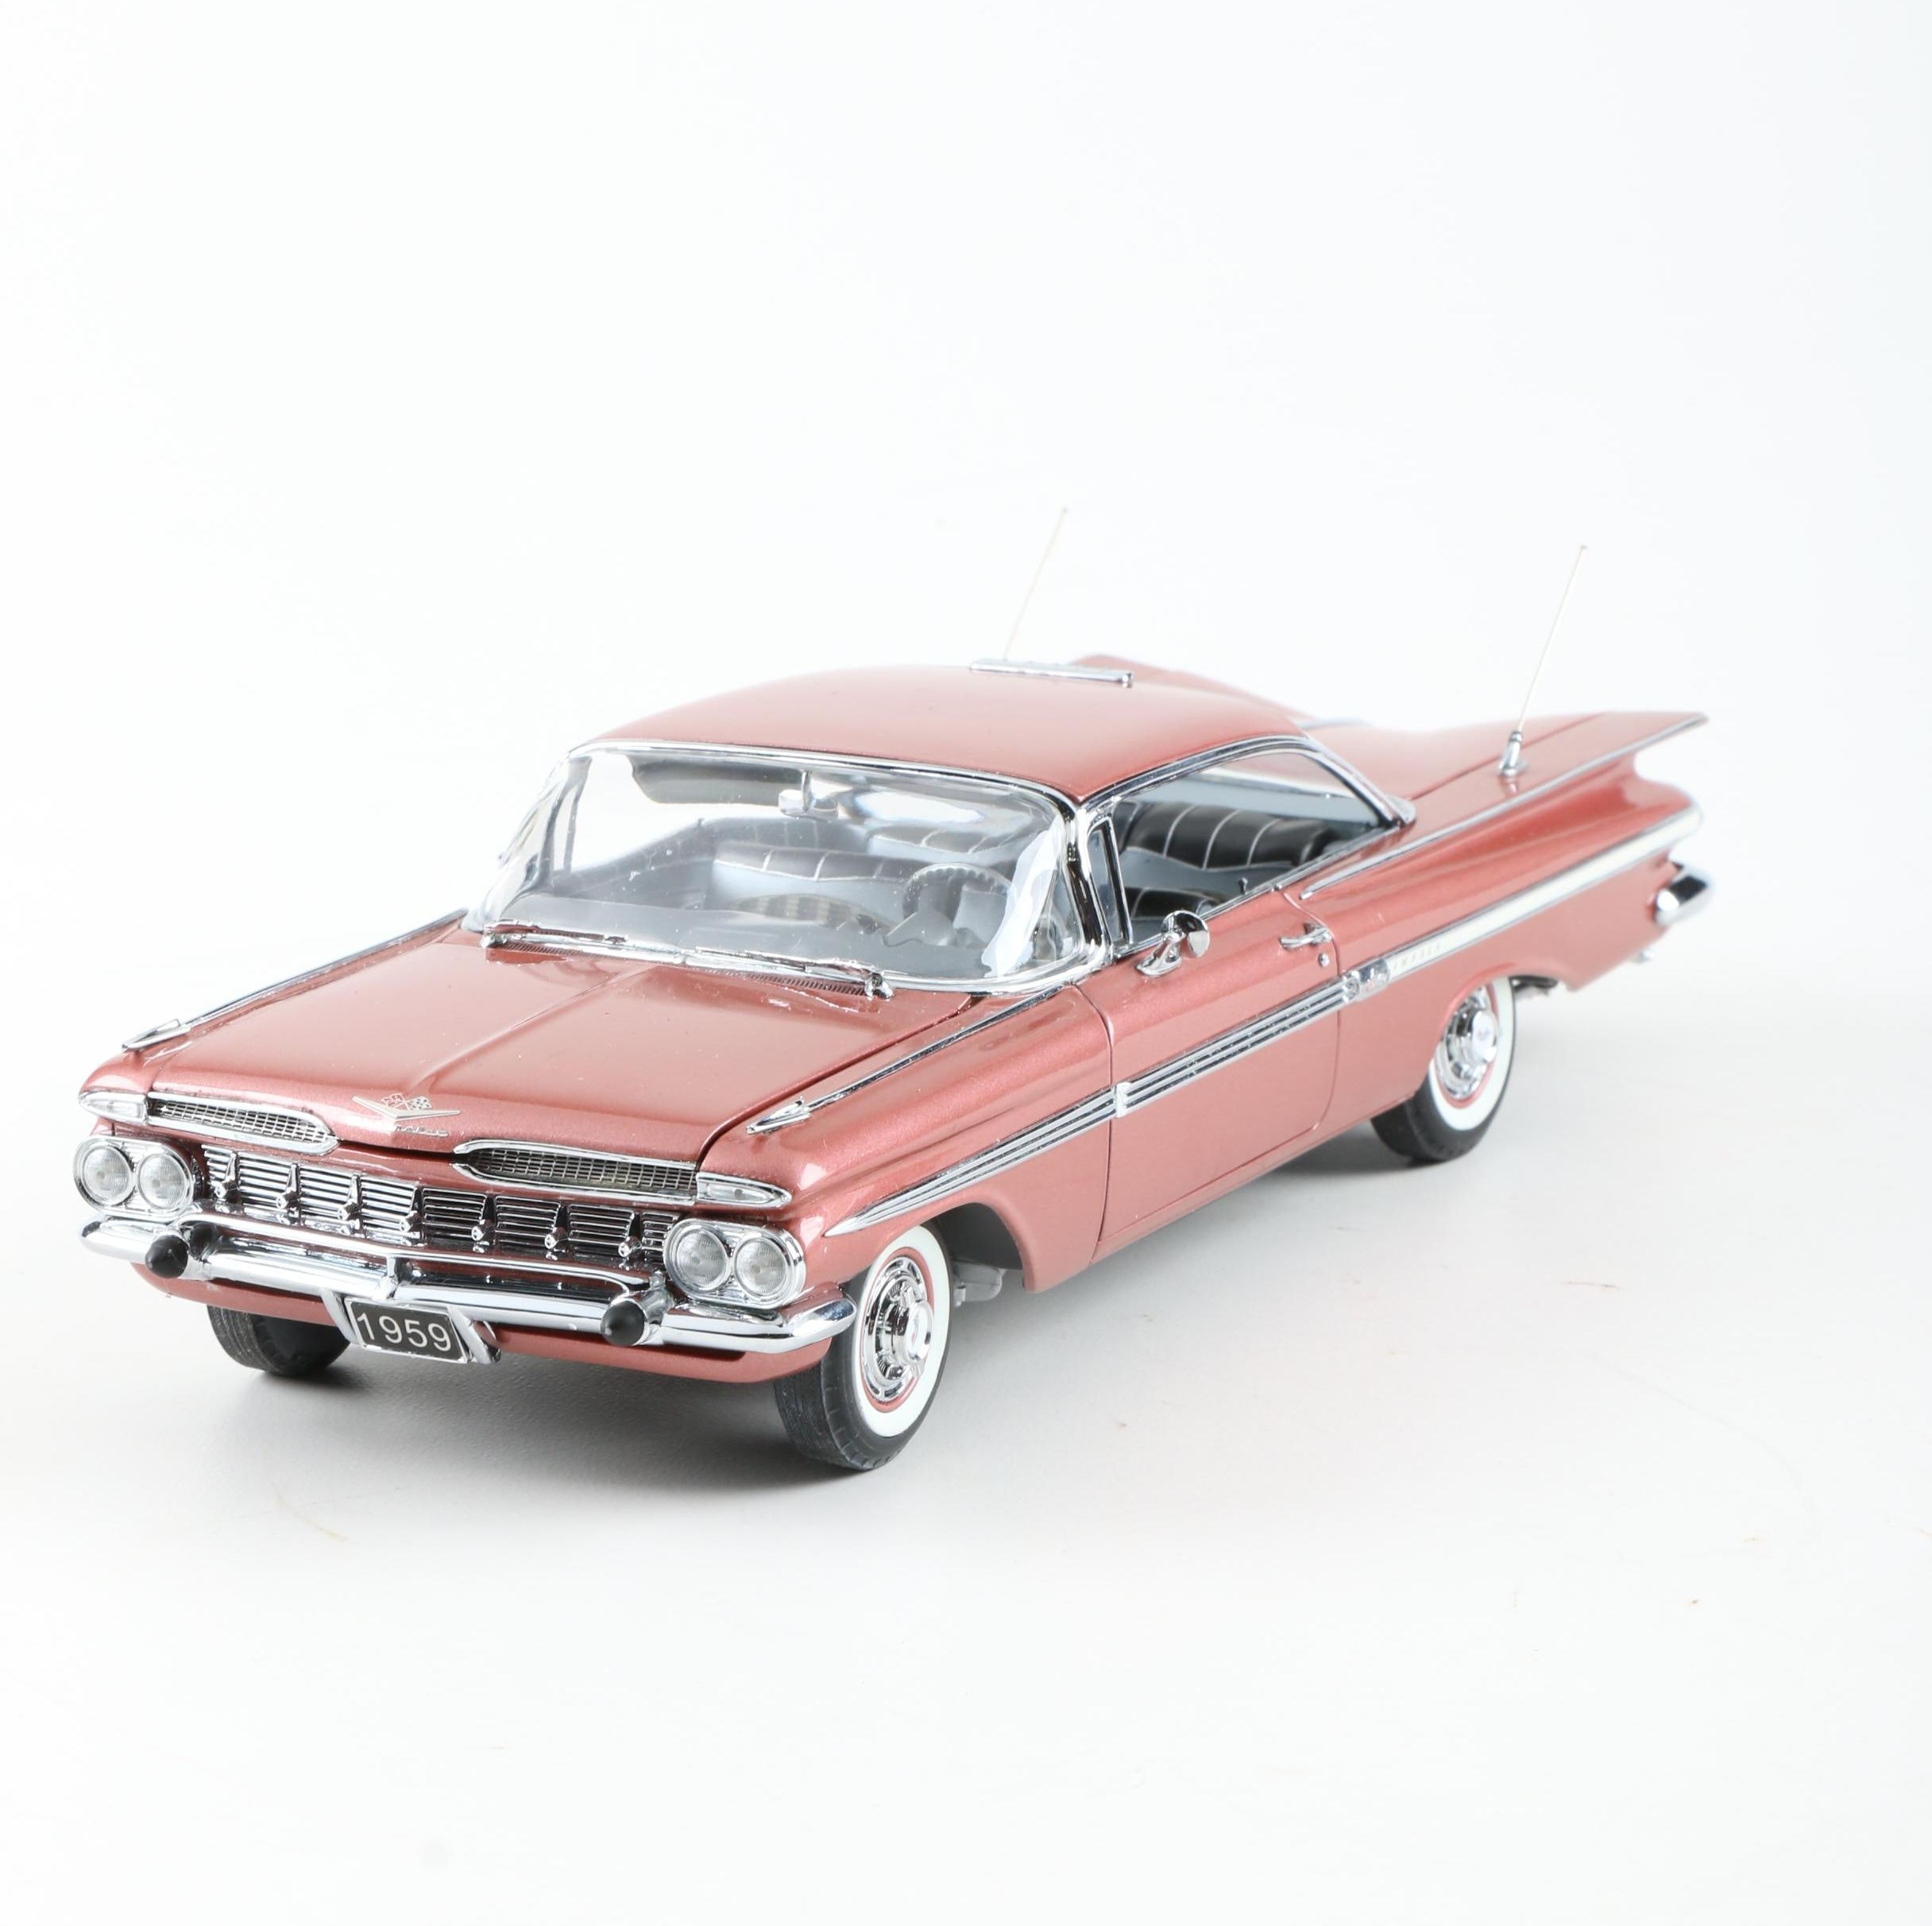 1959 Chevrolet Impala by Danbury Mint